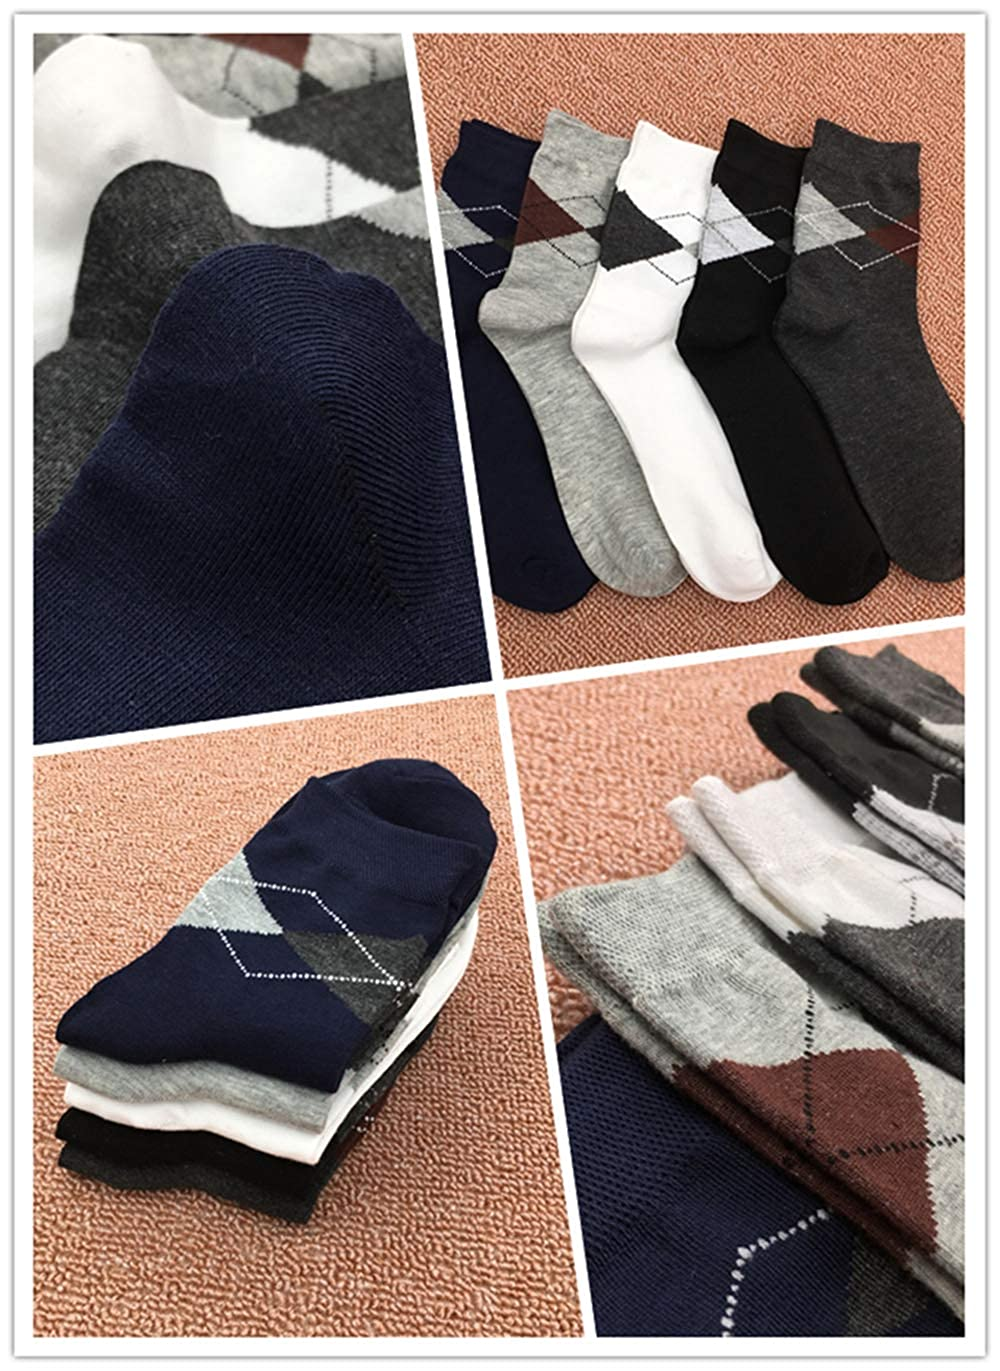 Mens Dress Socks Men Dress Socks for Casual or Business Men/'s Dress Socks for Men Colorful Classic Argyle Dress Socks Men with Assorted Colors 5 Packs Crew Dress Socks for Men Shoes Size 6-11